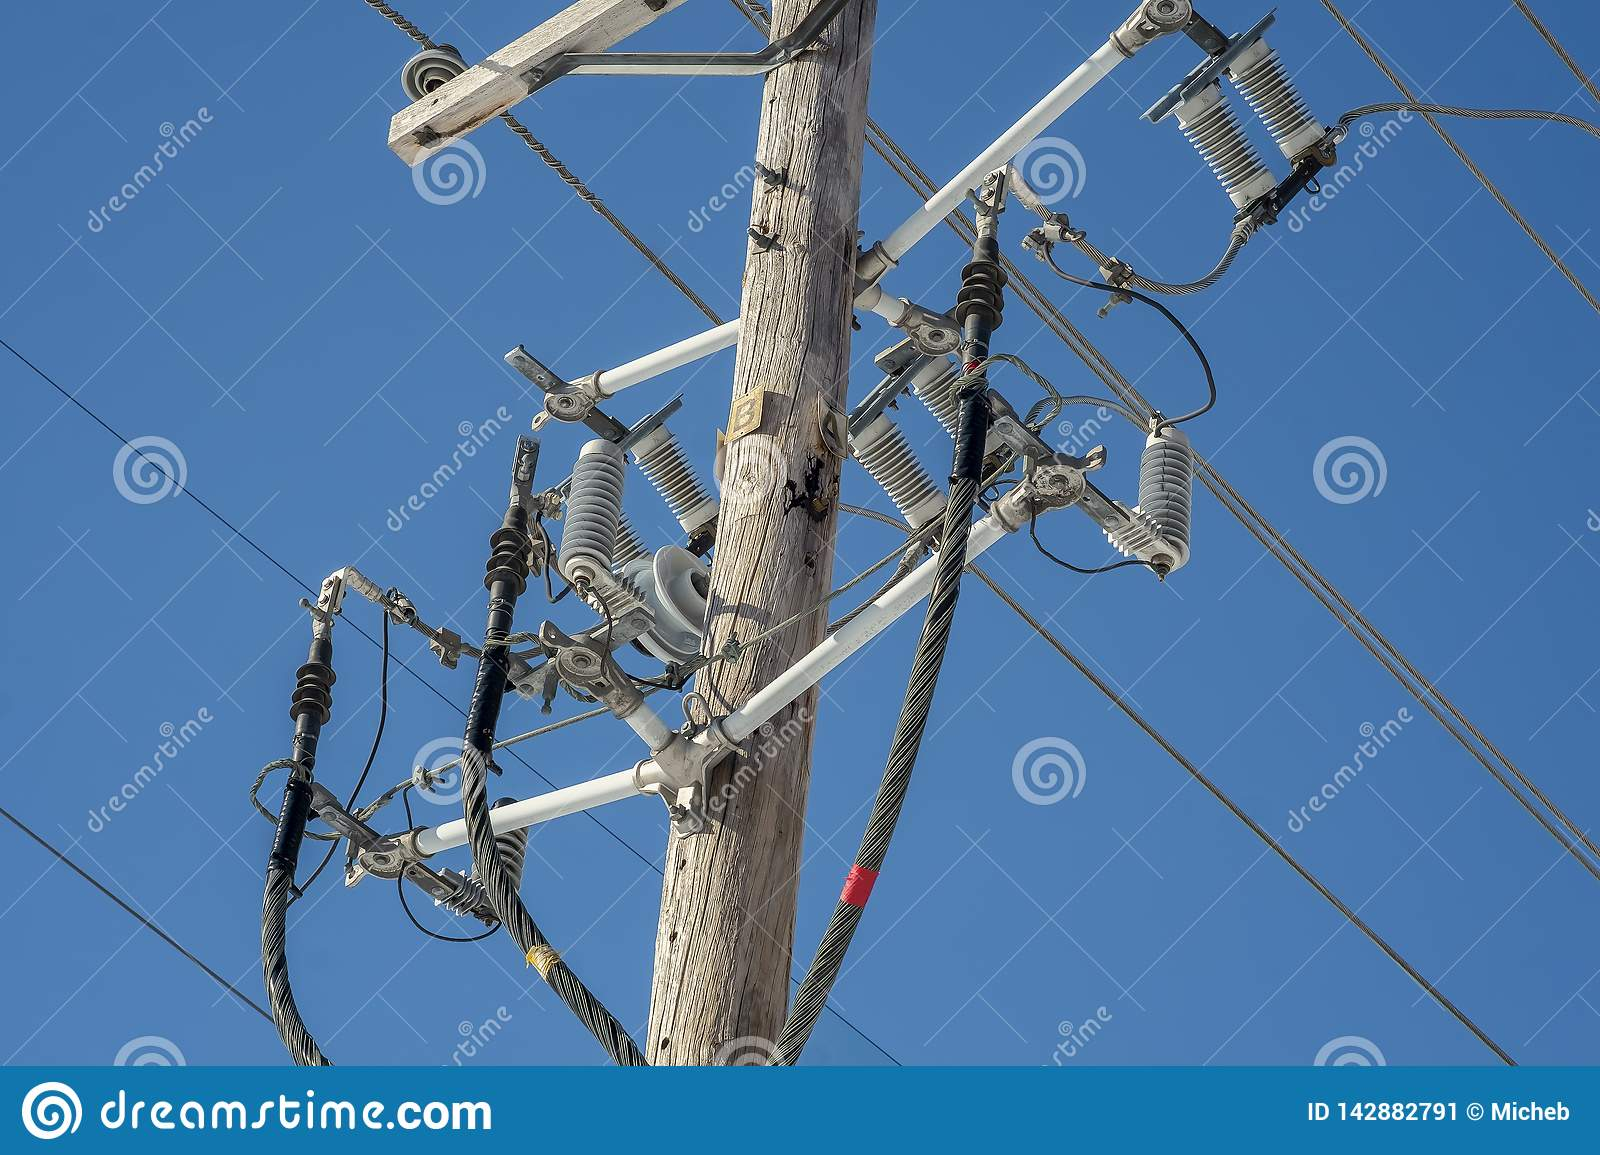 hight resolution of electrical insulator is a device used to support the power cord on a wood pole